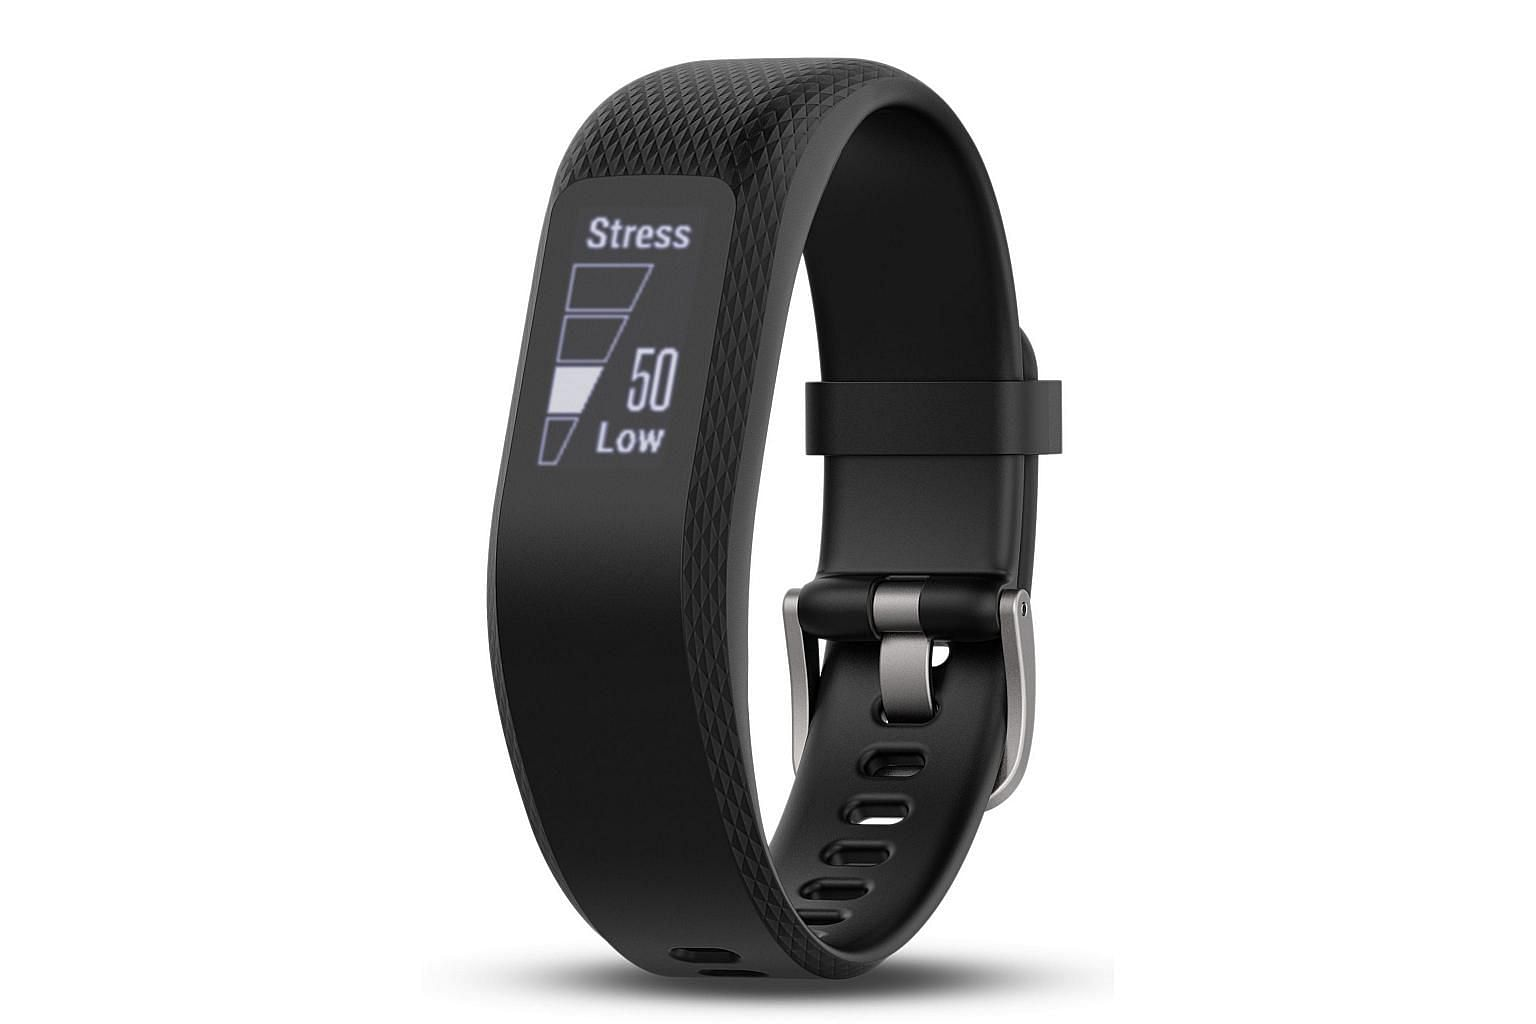 While not much of a looker, the Garmin vivosmart 3 (far left) is very comfortable to wear. Its watch-like clasp provides a secure fit on the wrist.